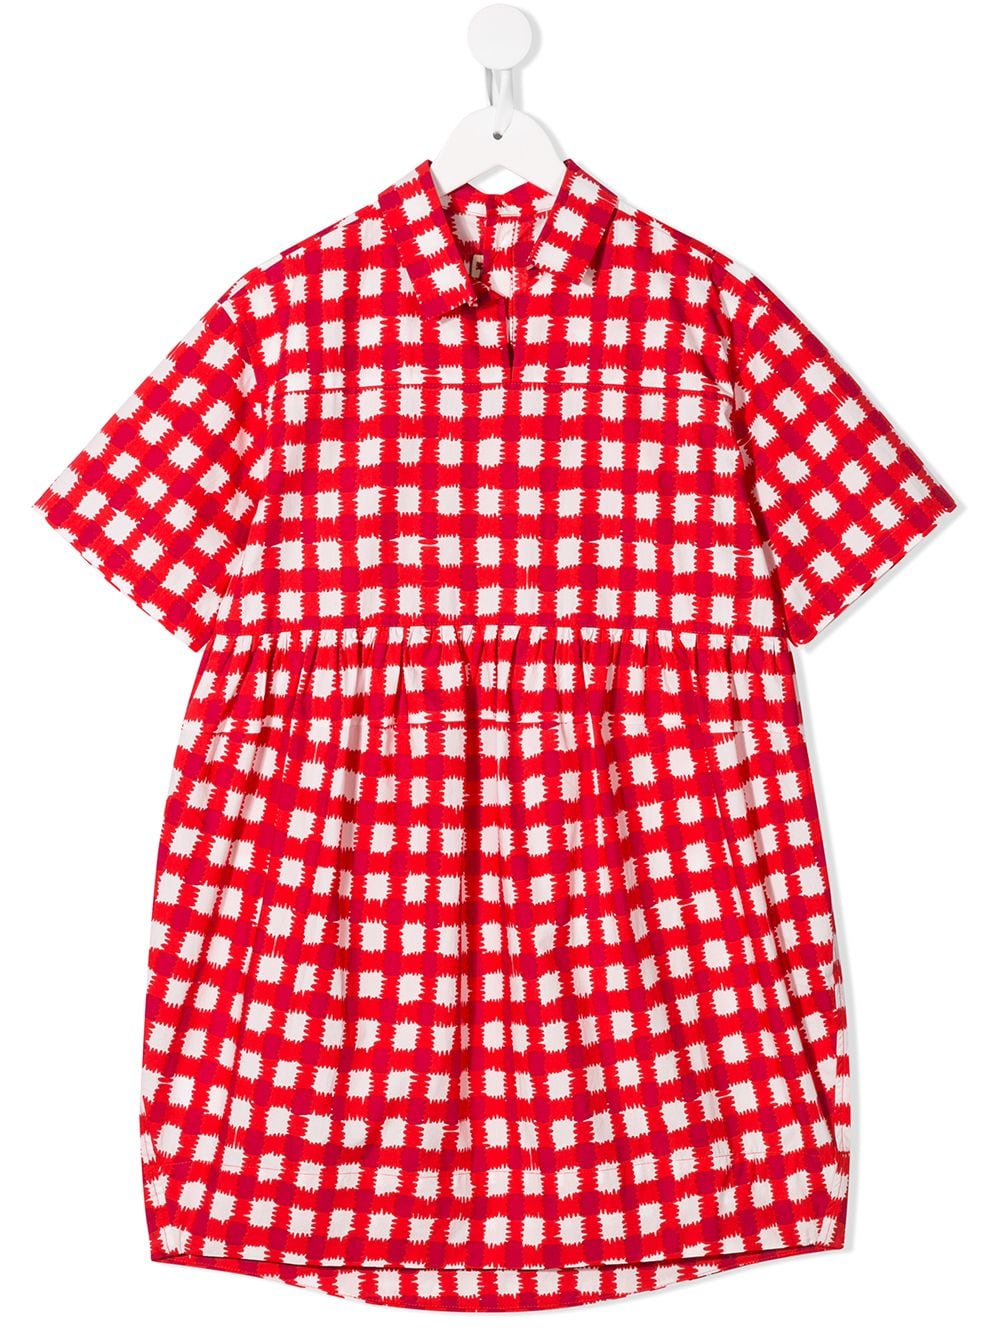 7b05398b86f6 Marni Kids checked dress - Red in 2019 | Products | Check dress, Kid ...